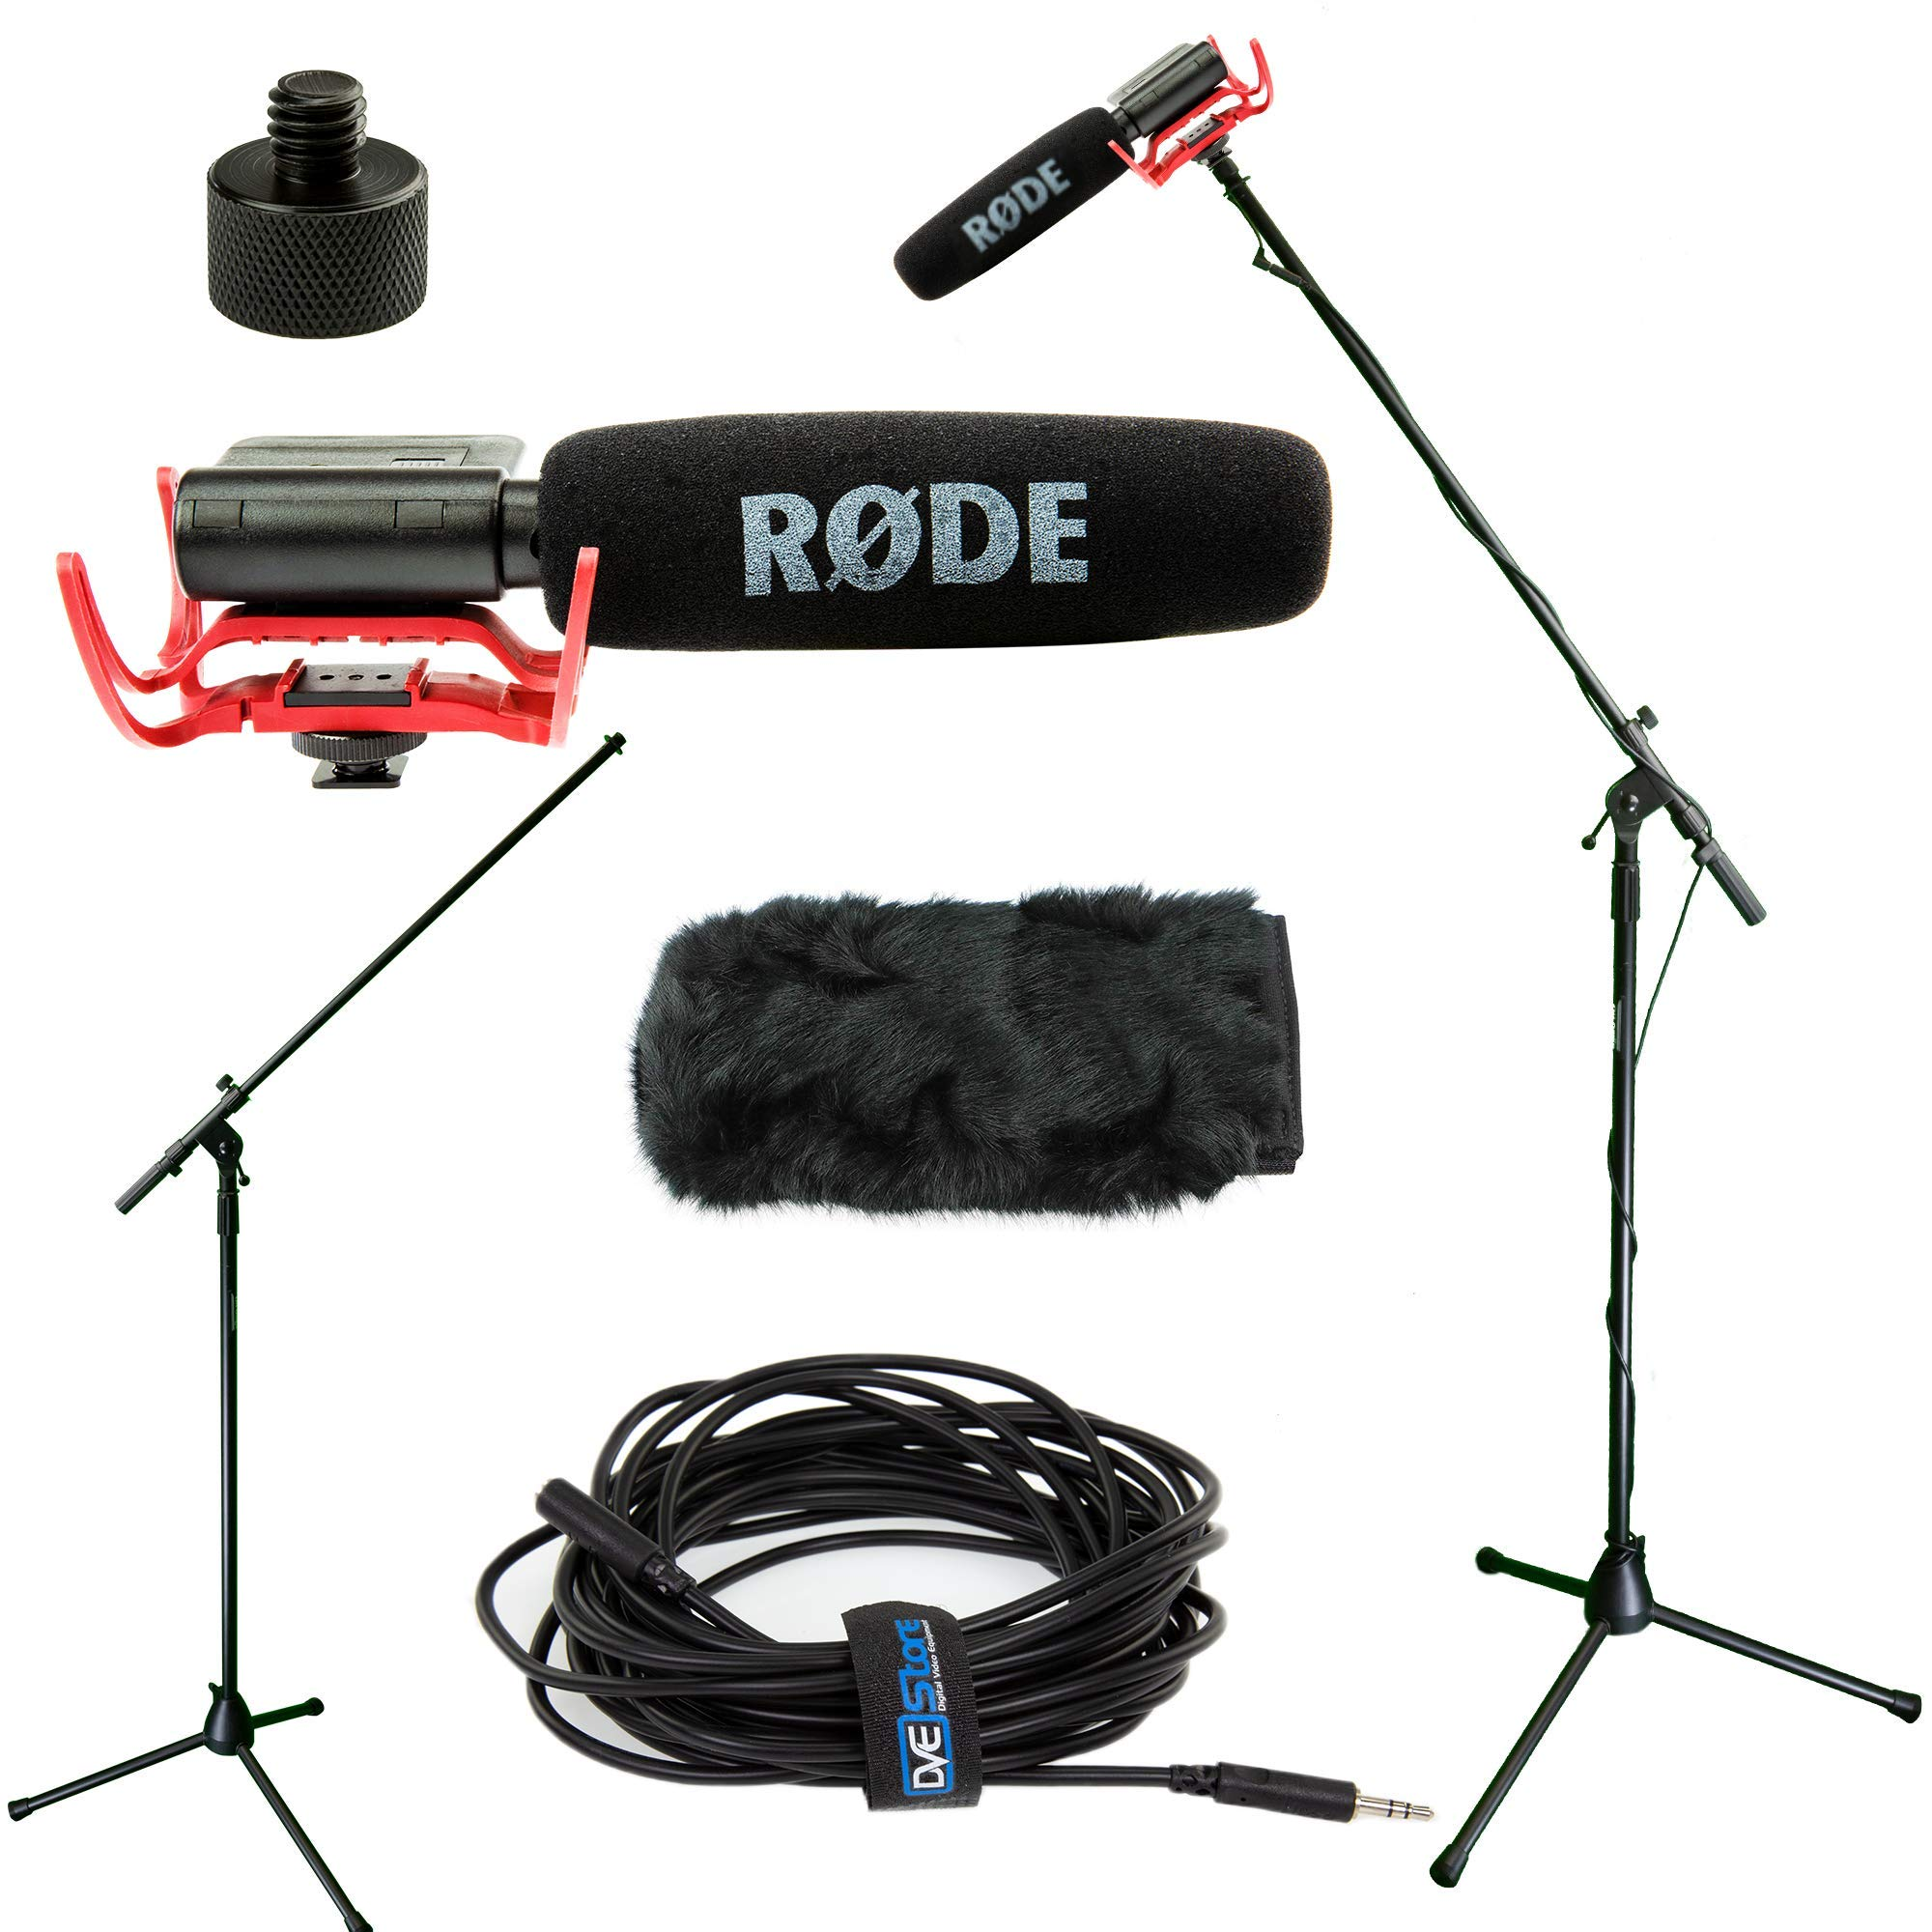 RODE VideoMic Studio Boom Kit with windmuff- VM, windmuff, Boom Stand, Adapter, 25' Cable by Rode